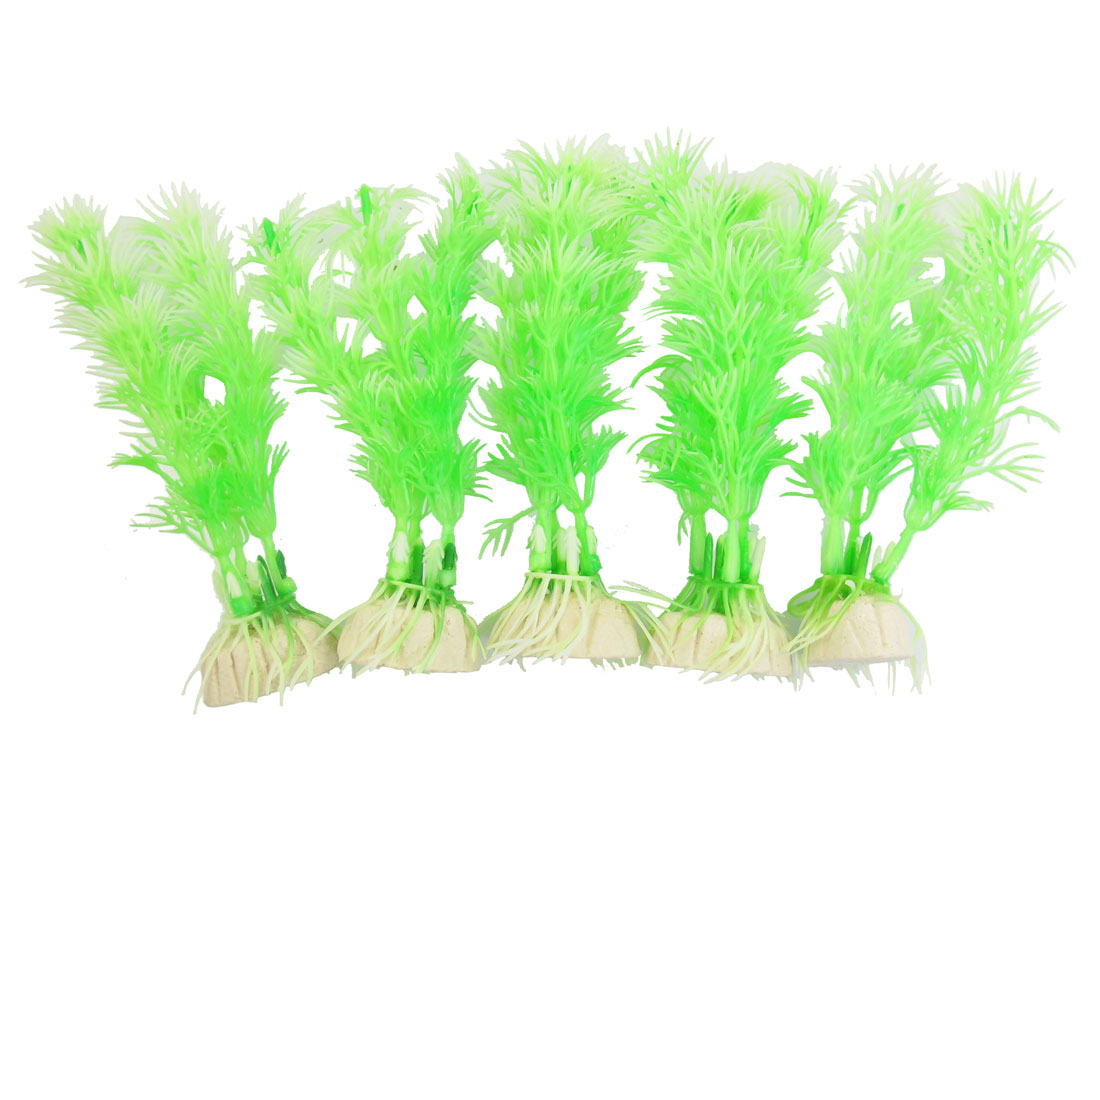 "10 Pcs Aquarium Decorative 4.7"" Height Pale Green Plastic Plants"